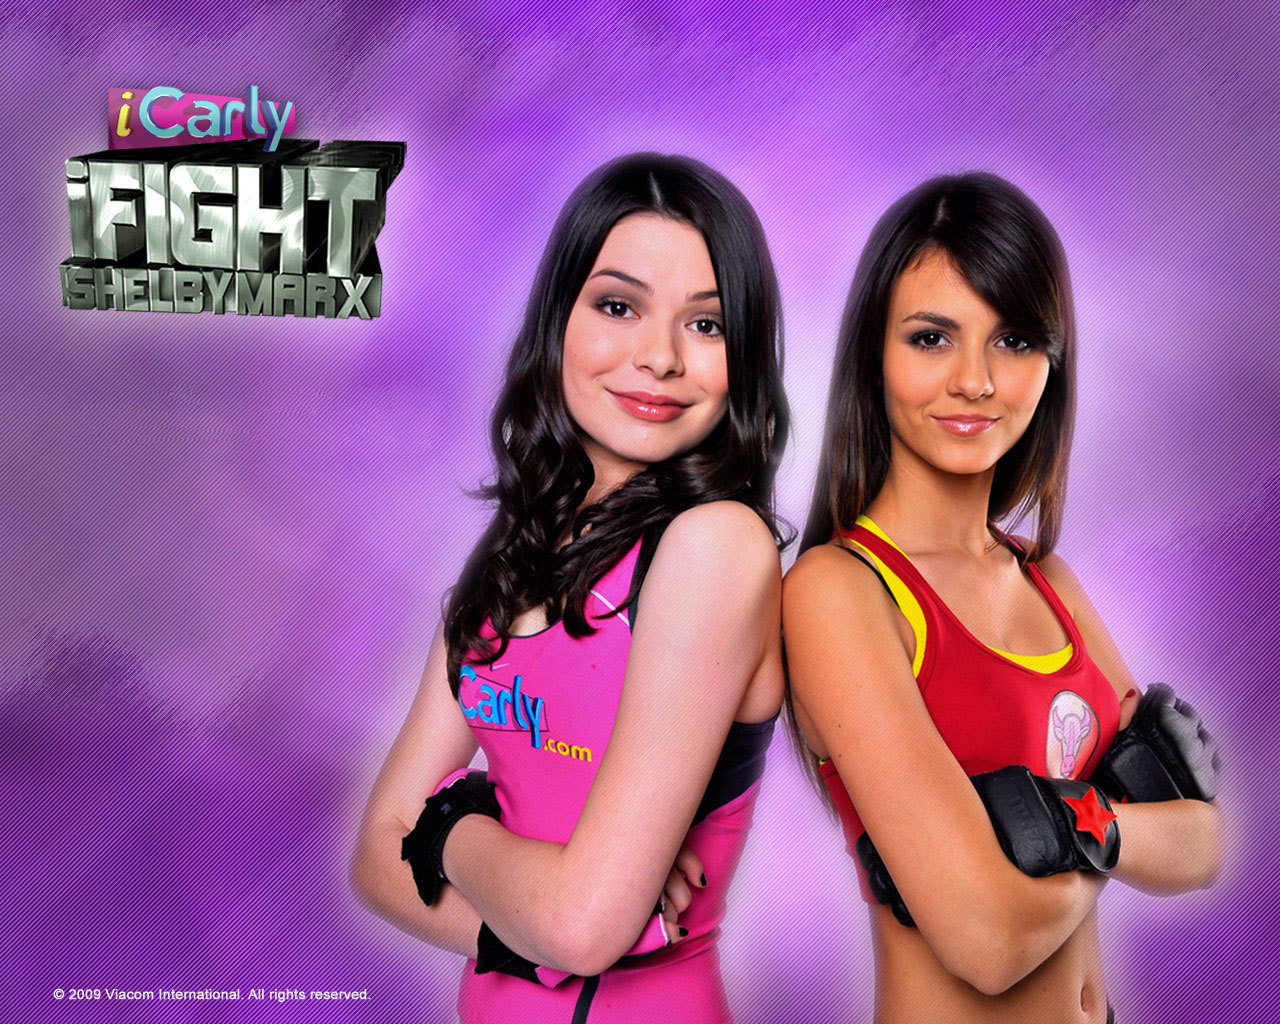 i carly wallpaper 13 - icarly wallpaper